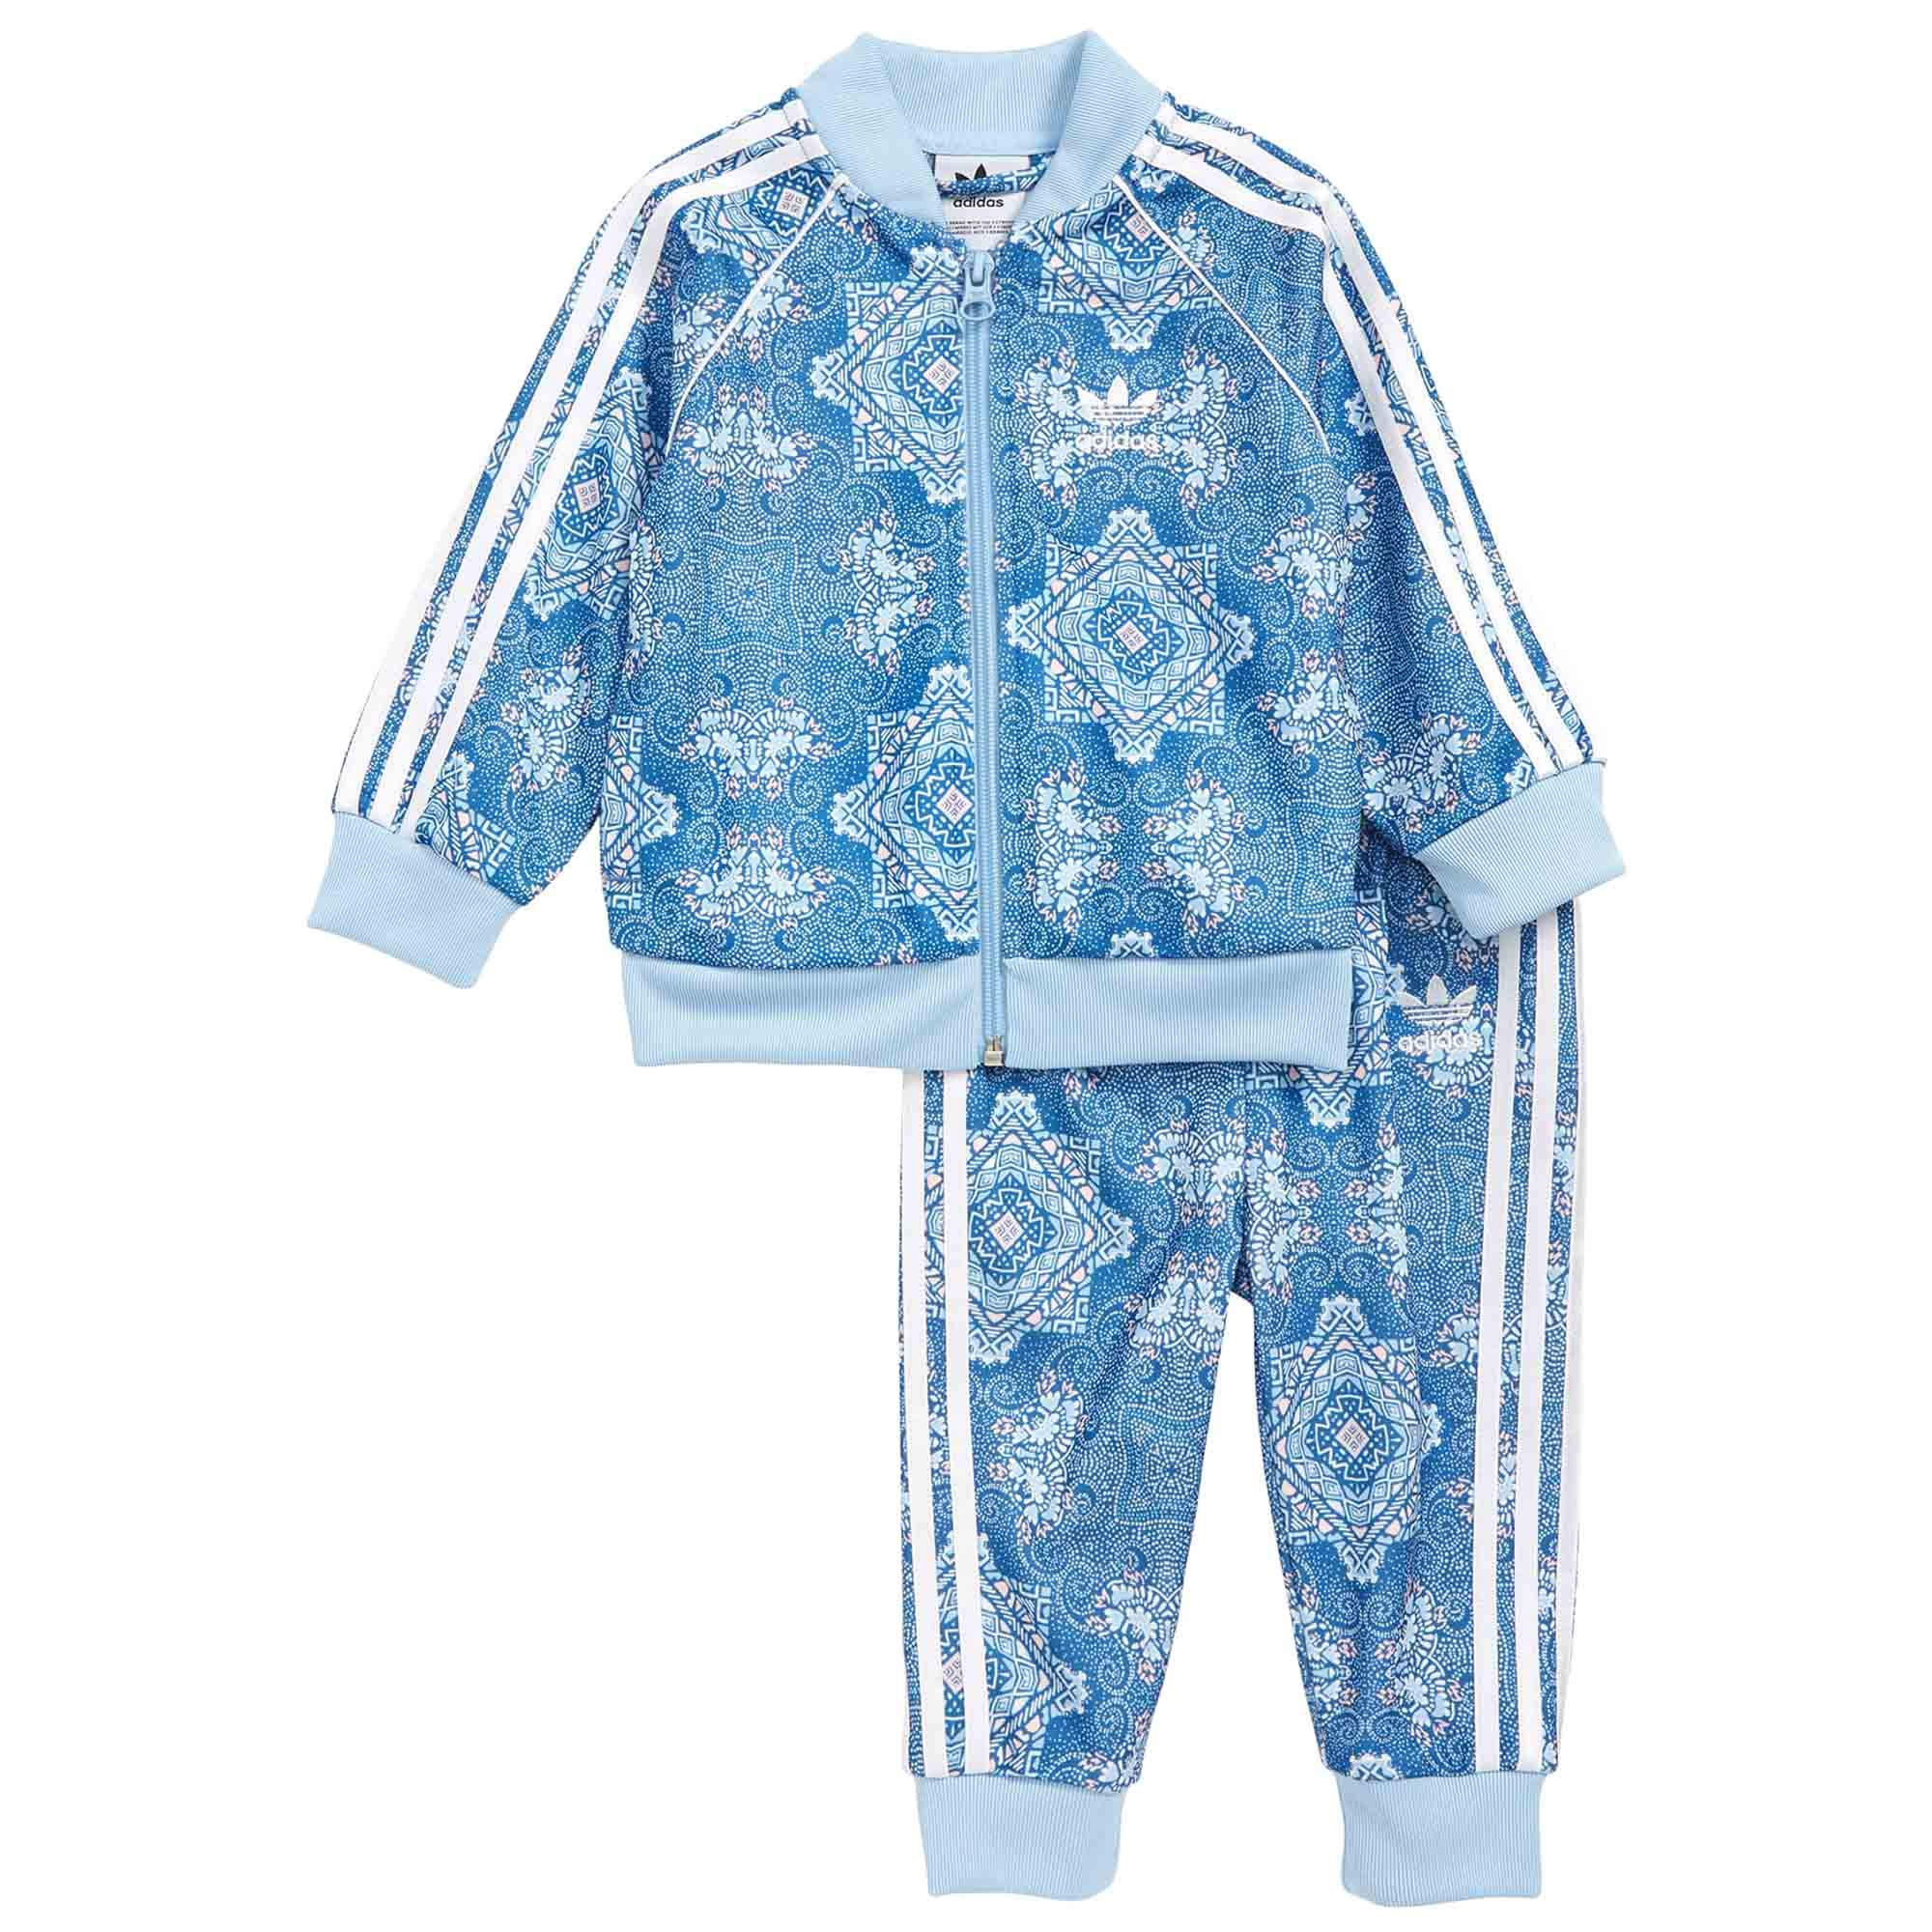 adidas Originals Kids' Toddler Culture Clash SST Track Suit Set, multi, 2T by adidas Originals